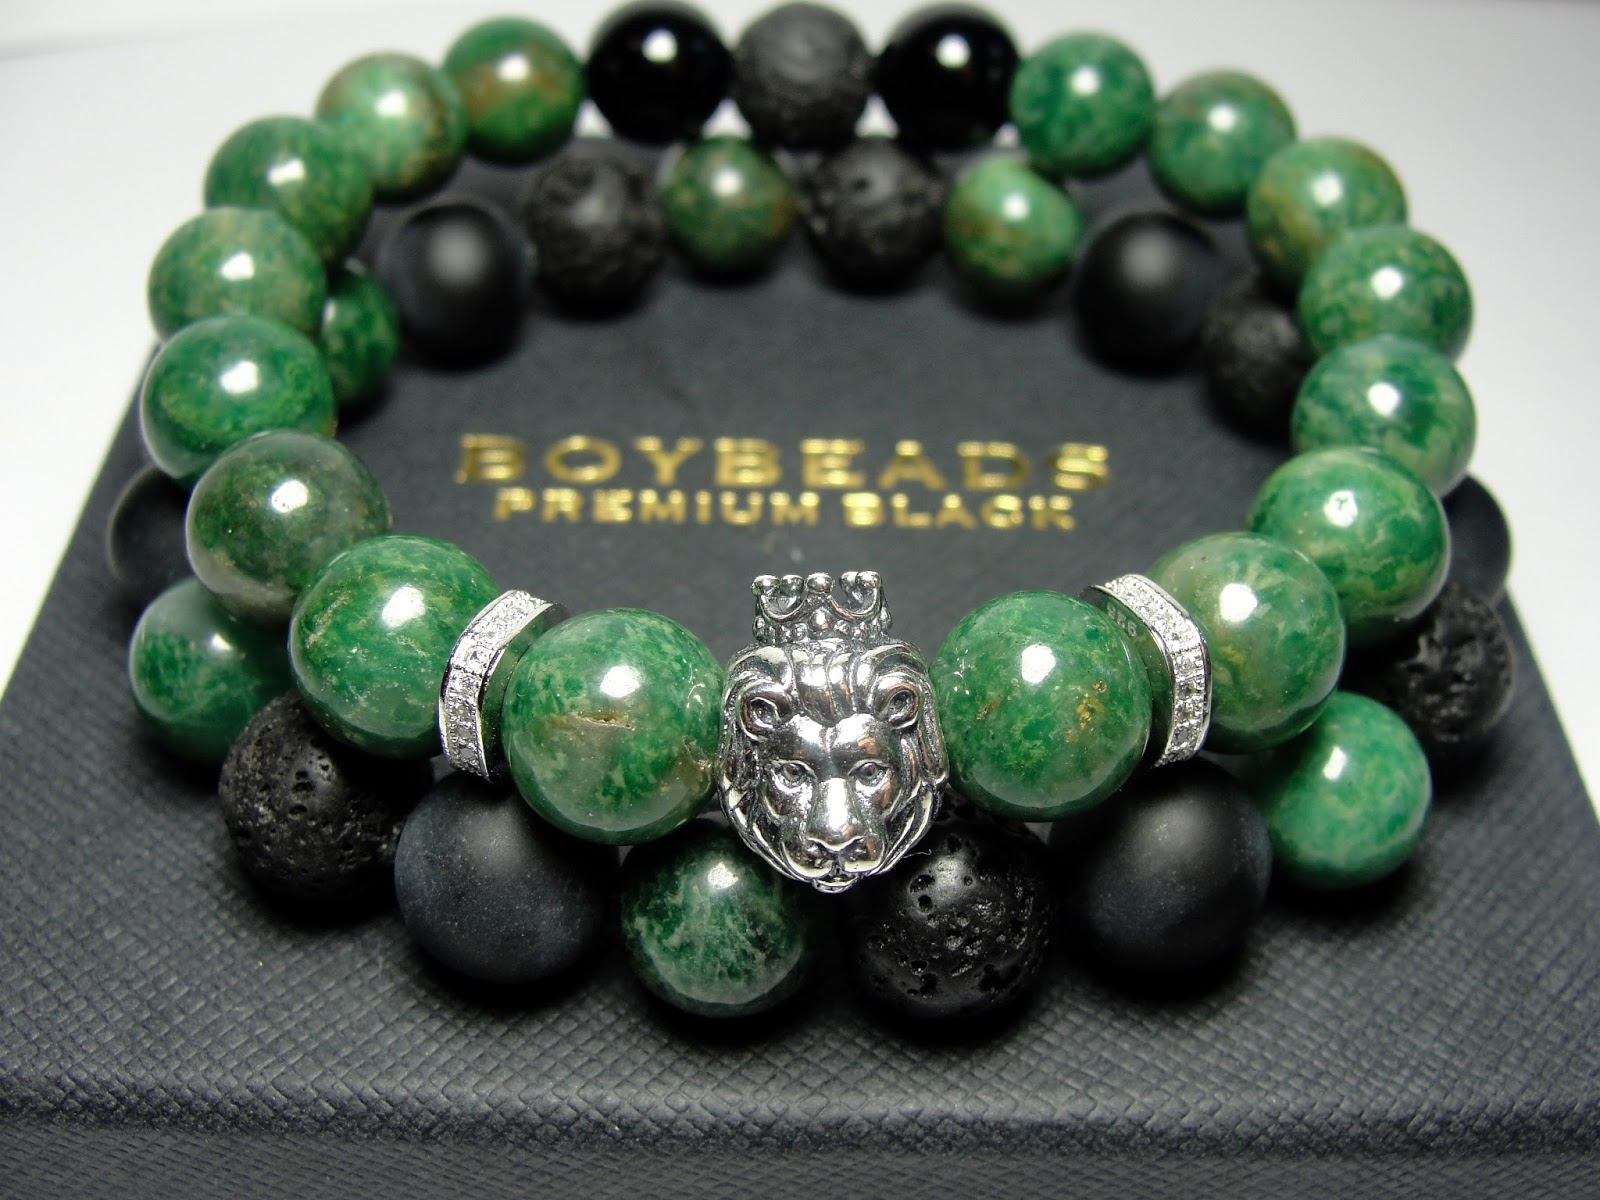 as wrist fck wealth beads jade zen jewelry yoga f high il listing mens bracelet meditation success grade fullxfull om ck mala gemstones